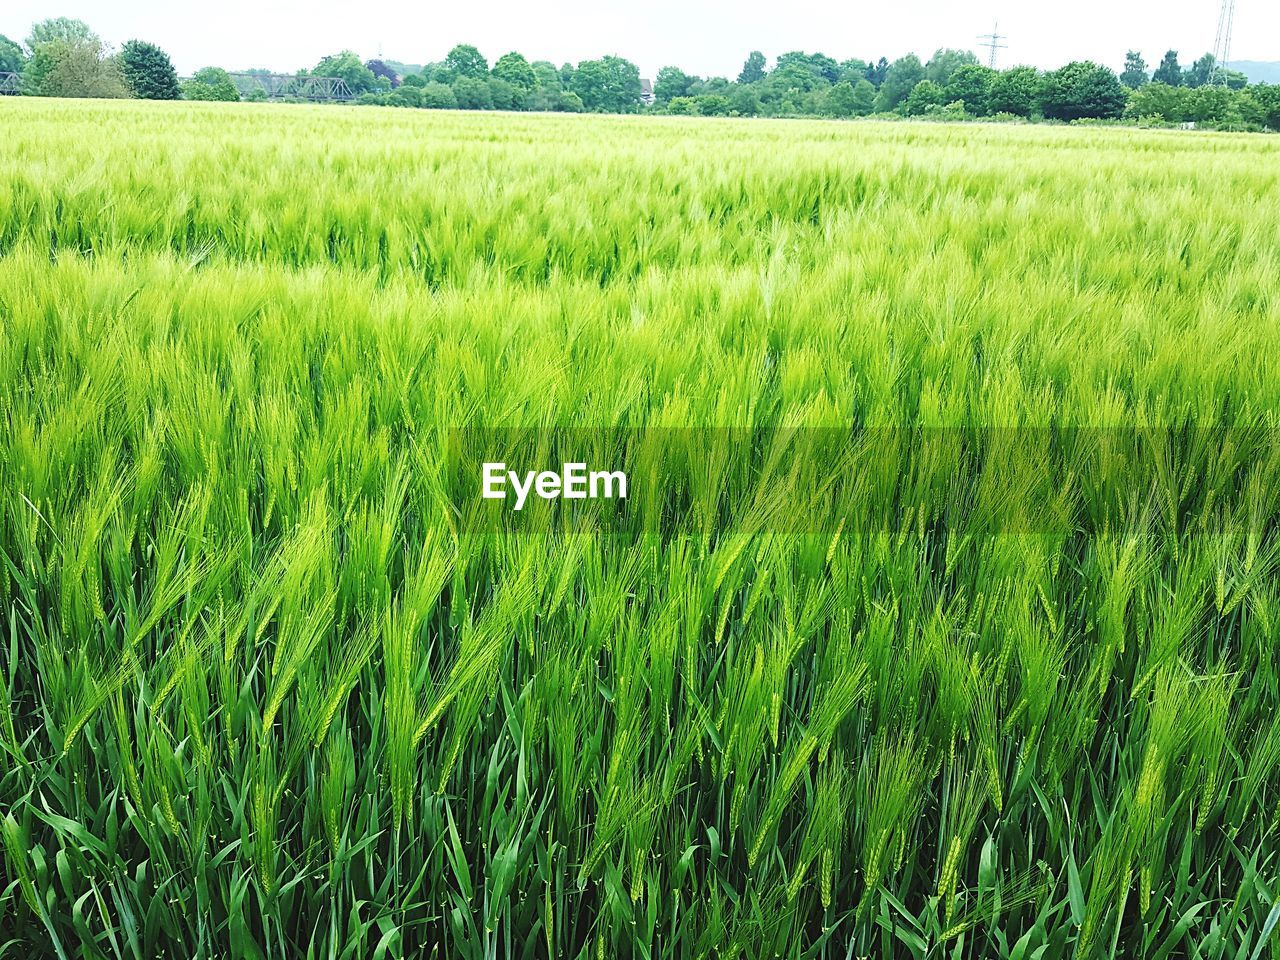 plant, field, landscape, agriculture, growth, rural scene, green color, land, crop, environment, cereal plant, farm, scenics - nature, beauty in nature, tranquility, tranquil scene, nature, day, no people, cultivated land, outdoors, plantation